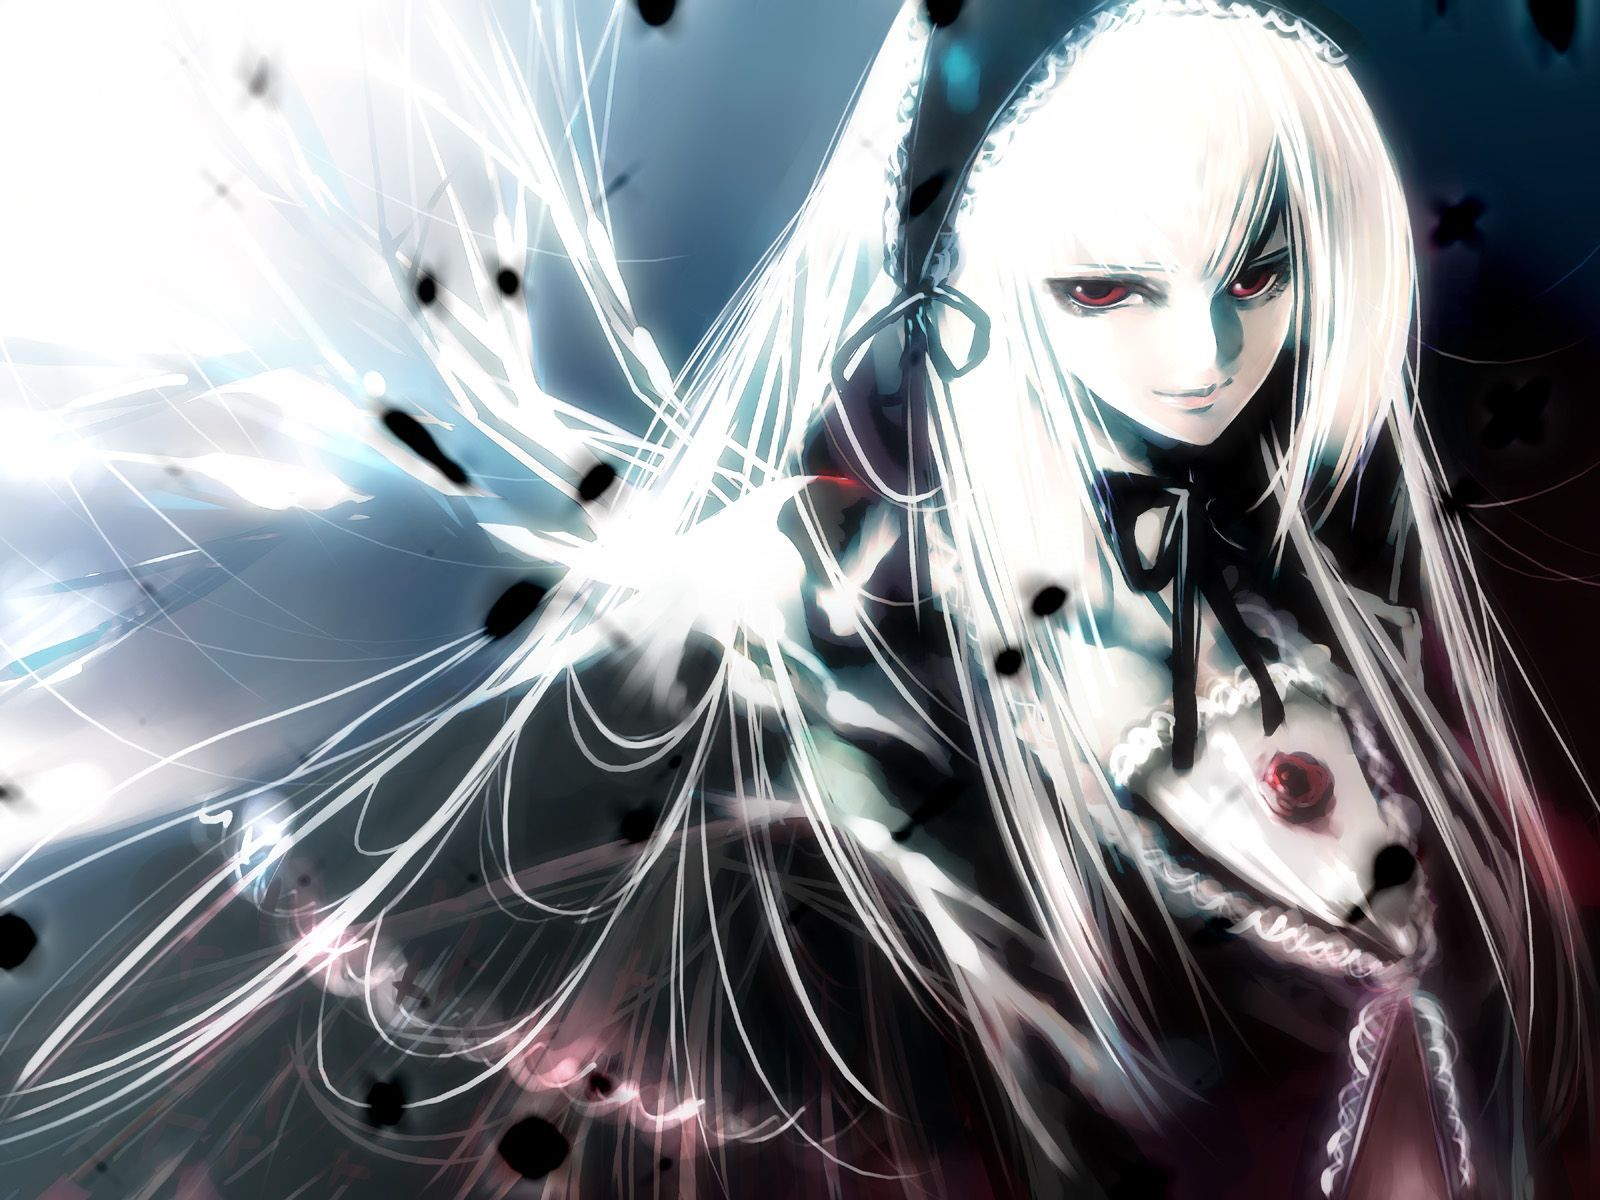 1600x1200 cold as ice | Hellfire | Pinterest | Anime, Hd anime wallpapers and ...